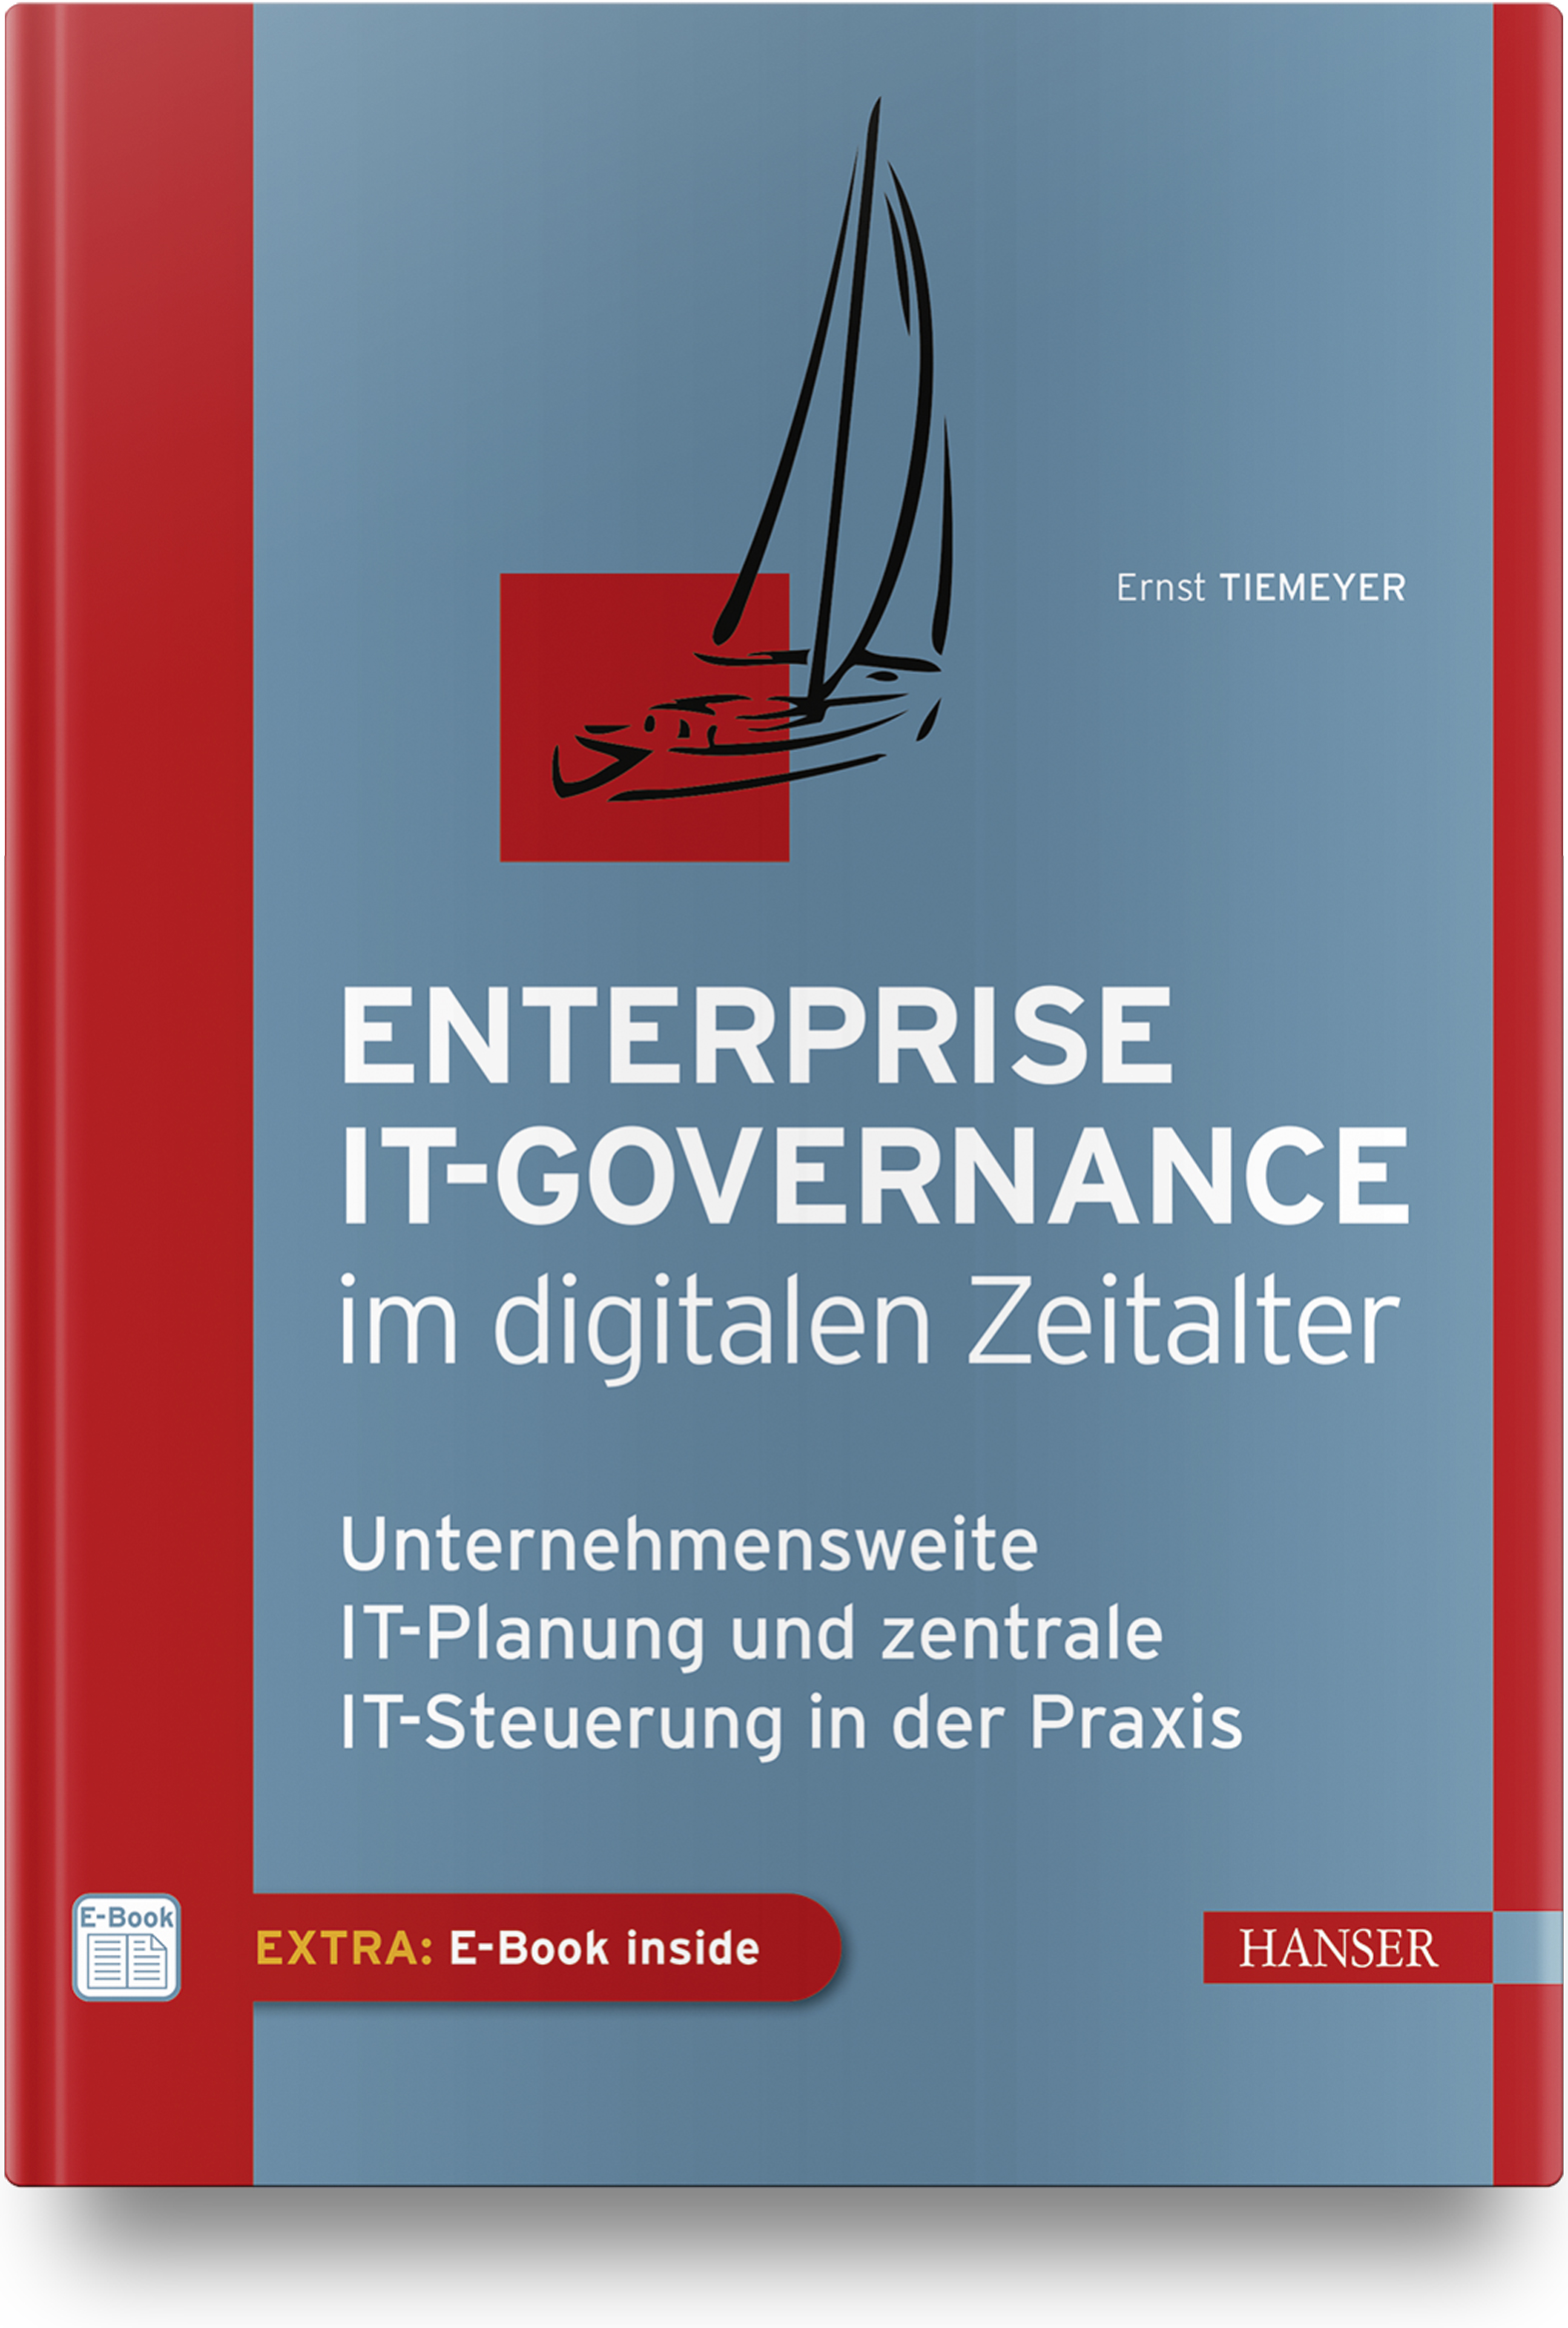 Tiemeyer, Klotz, Enterprise IT-Governance im digitalen Zeitalter, 978-3-446-42729-7